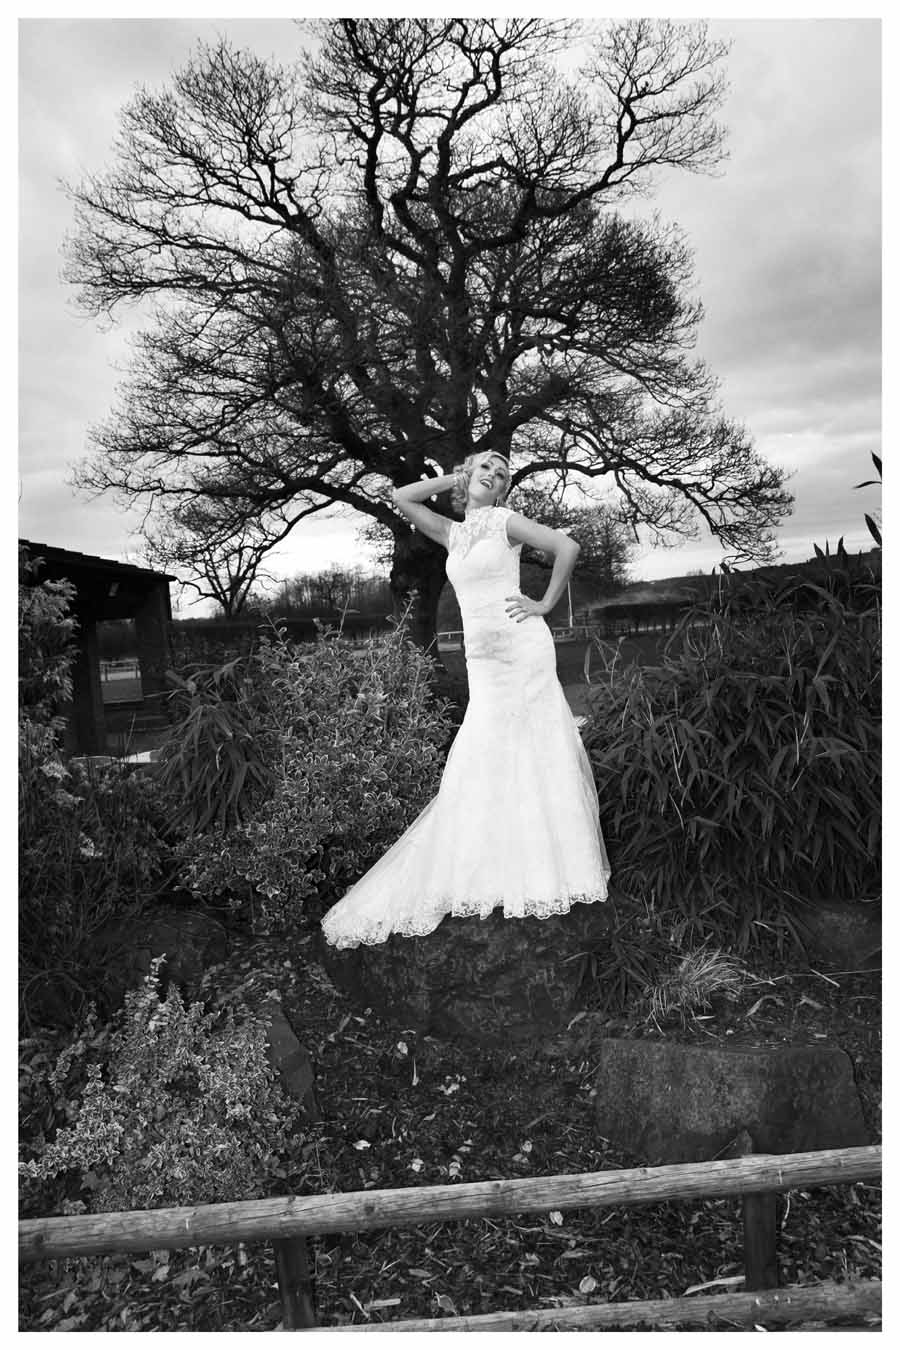 BRIDE Photos by Simeon Thaw copyright 2014 (49).jpg